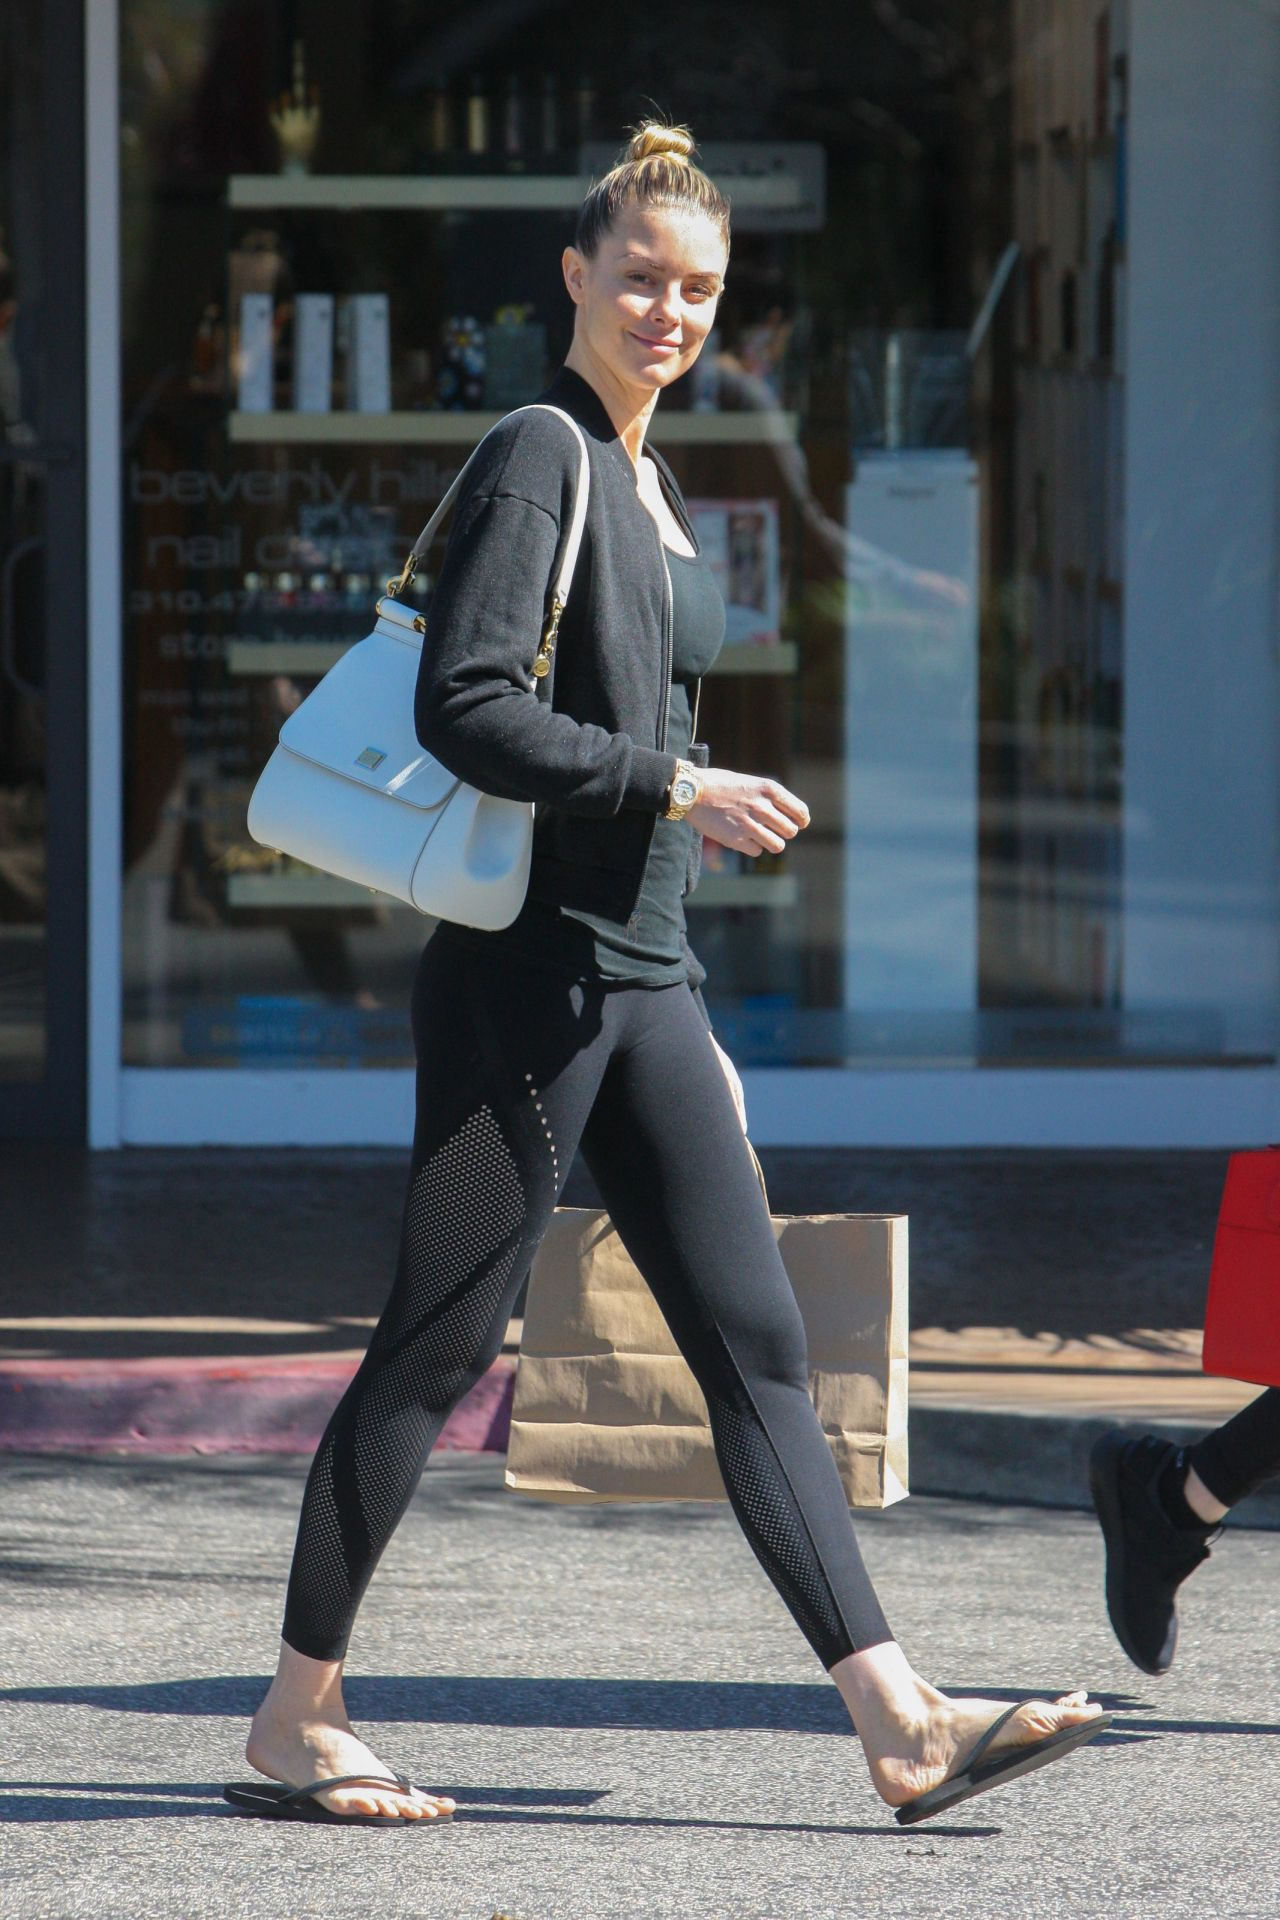 Paige butcher in spandex beverly hills nude (59 photo), Paparazzi Celebrity photo